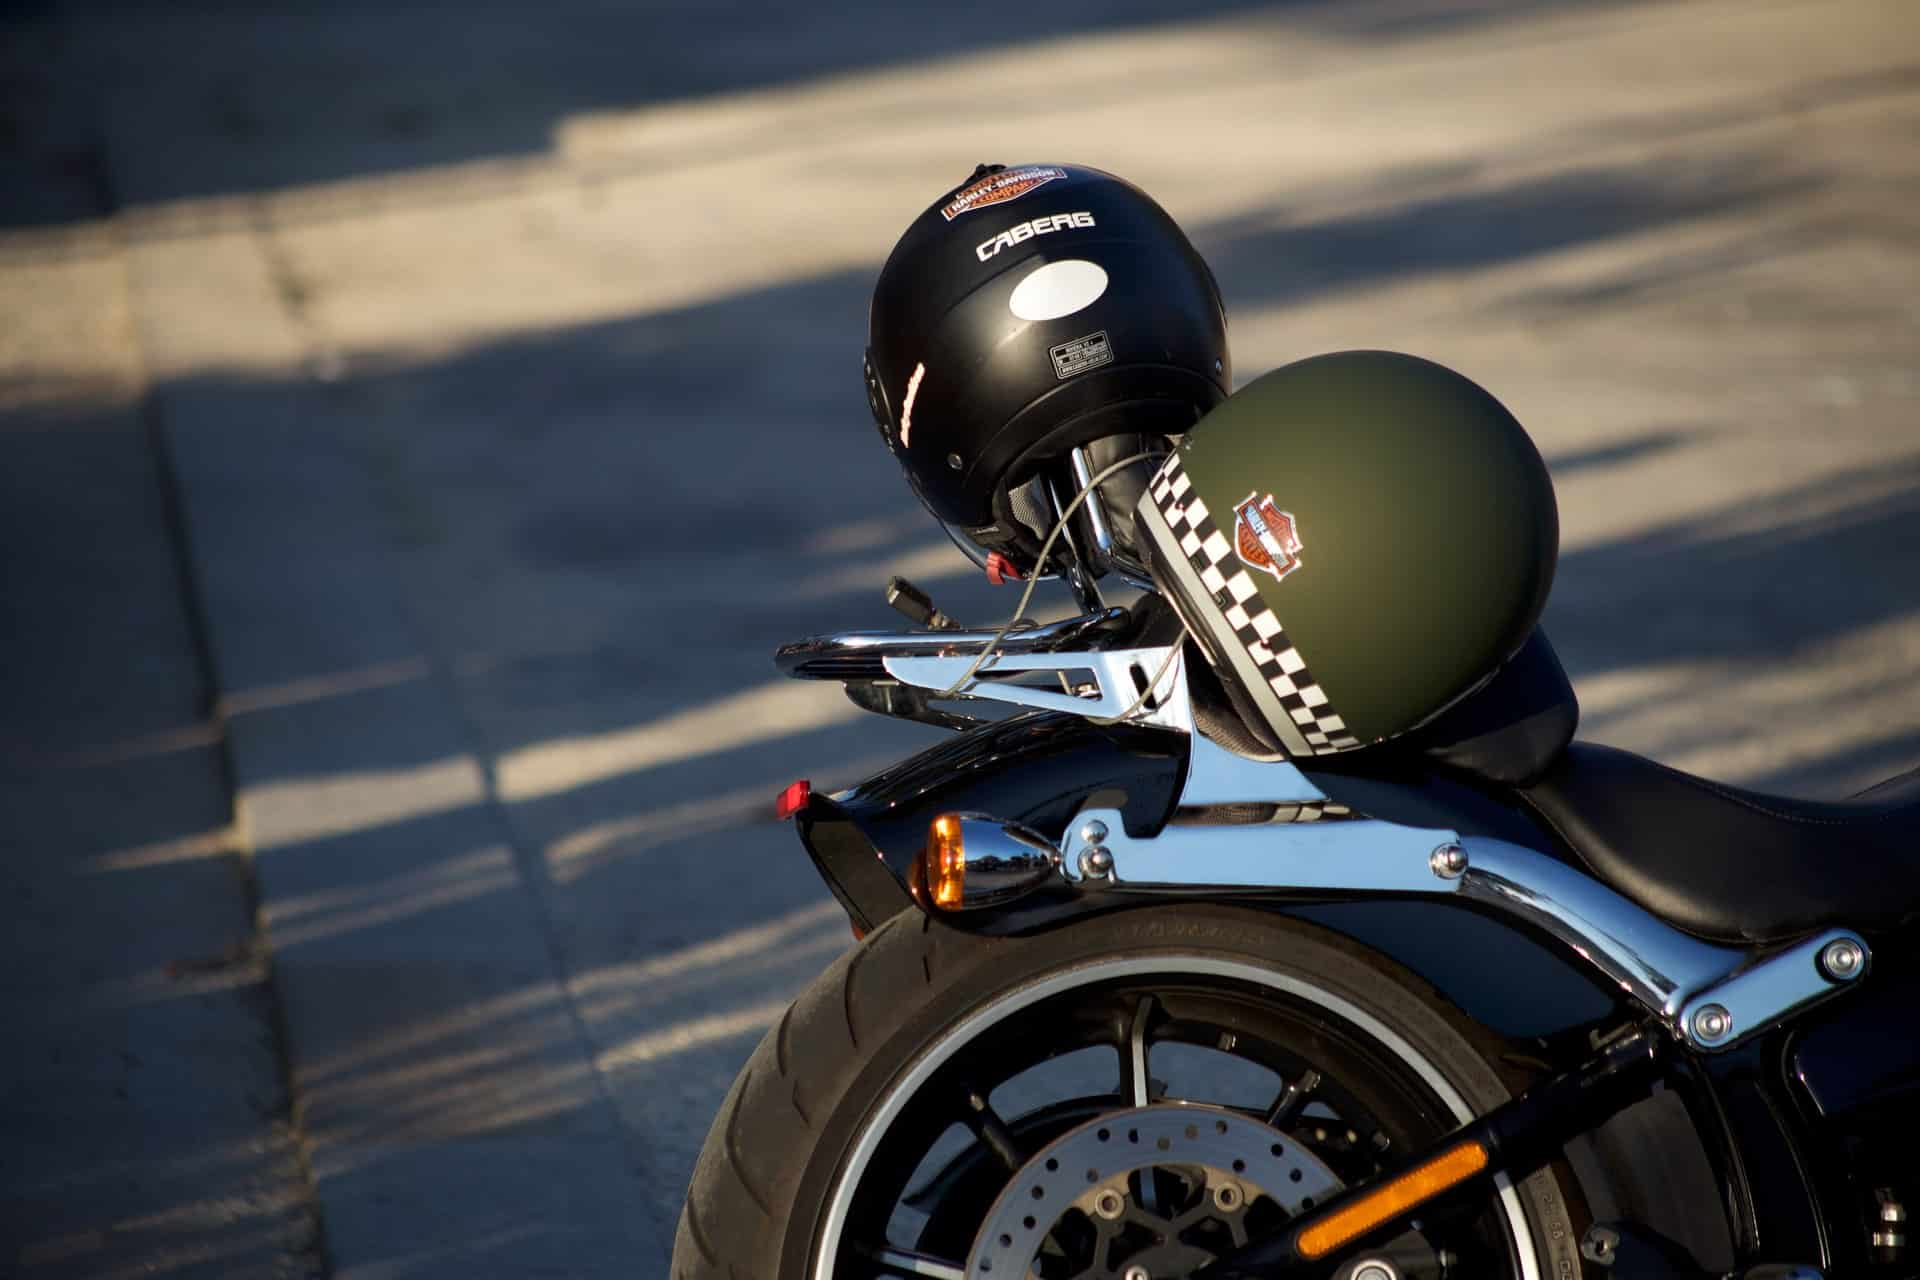 helmets on motorcycle